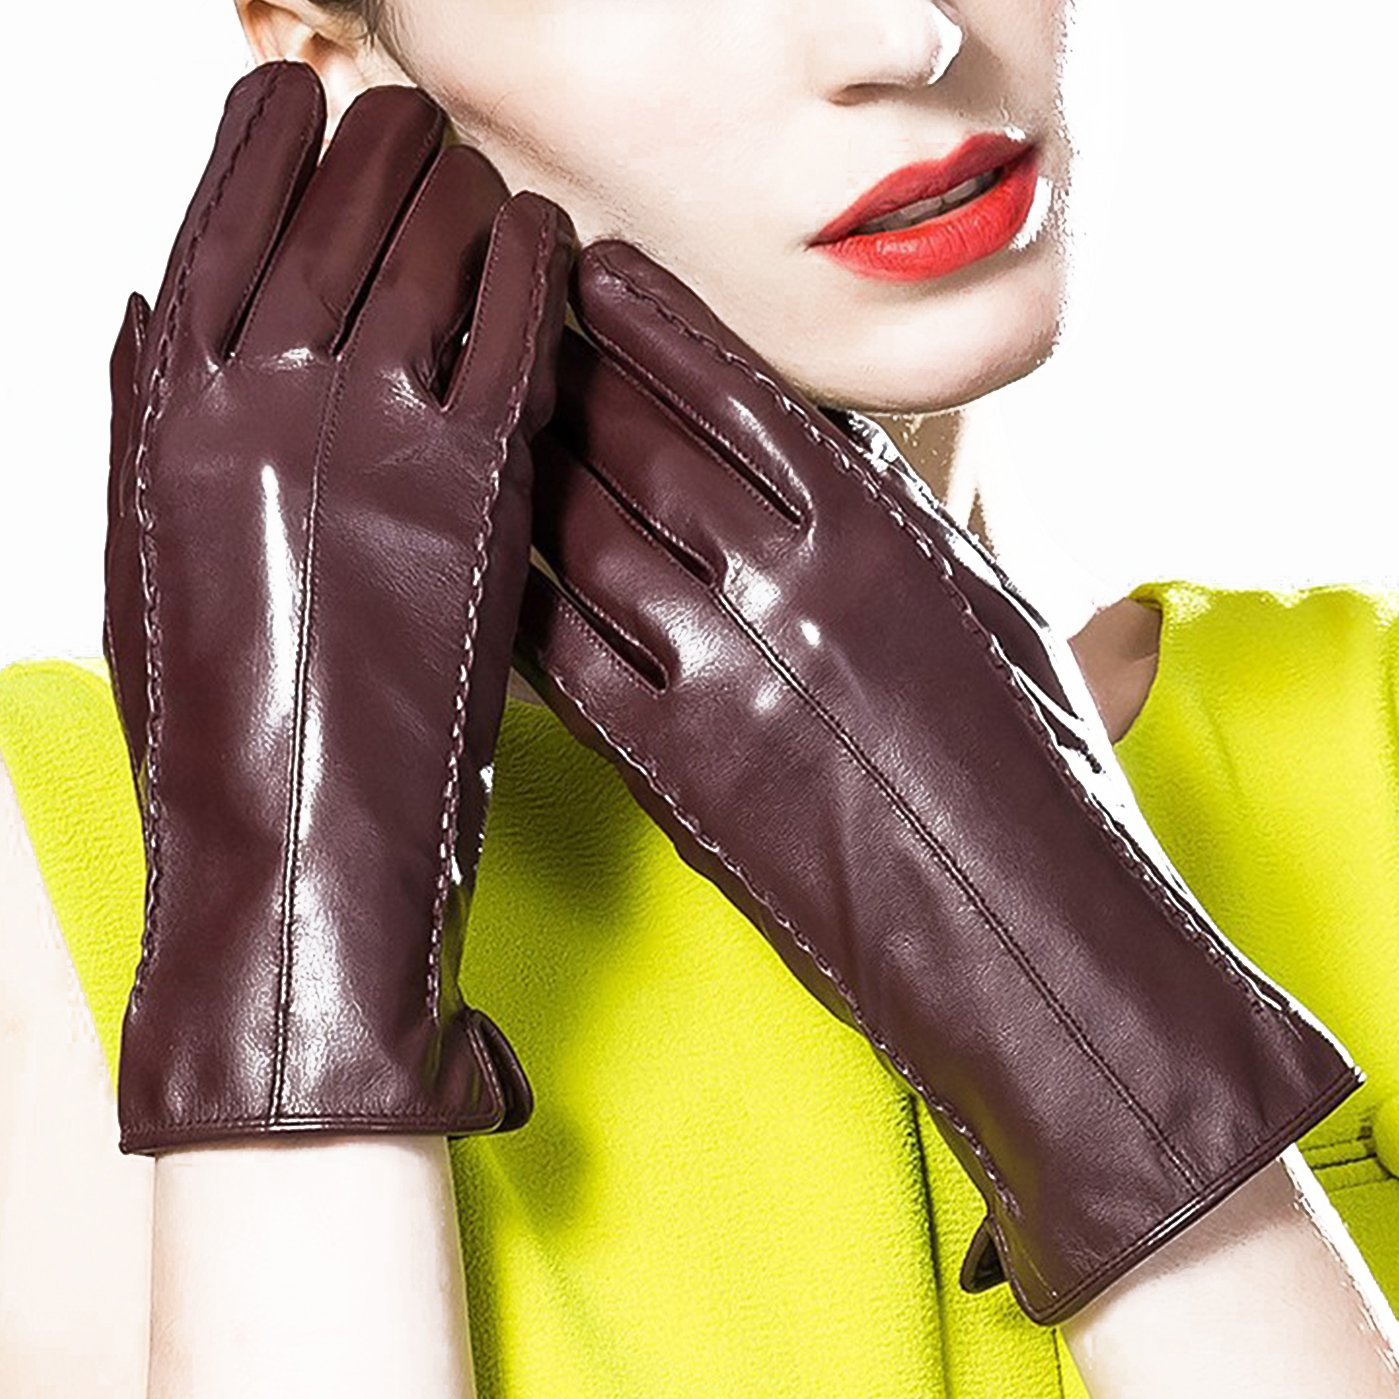 KelaSip Sheepskin Leather Gloves Touchscreen Winter Warm Business Fashion for Women's Texting Driving